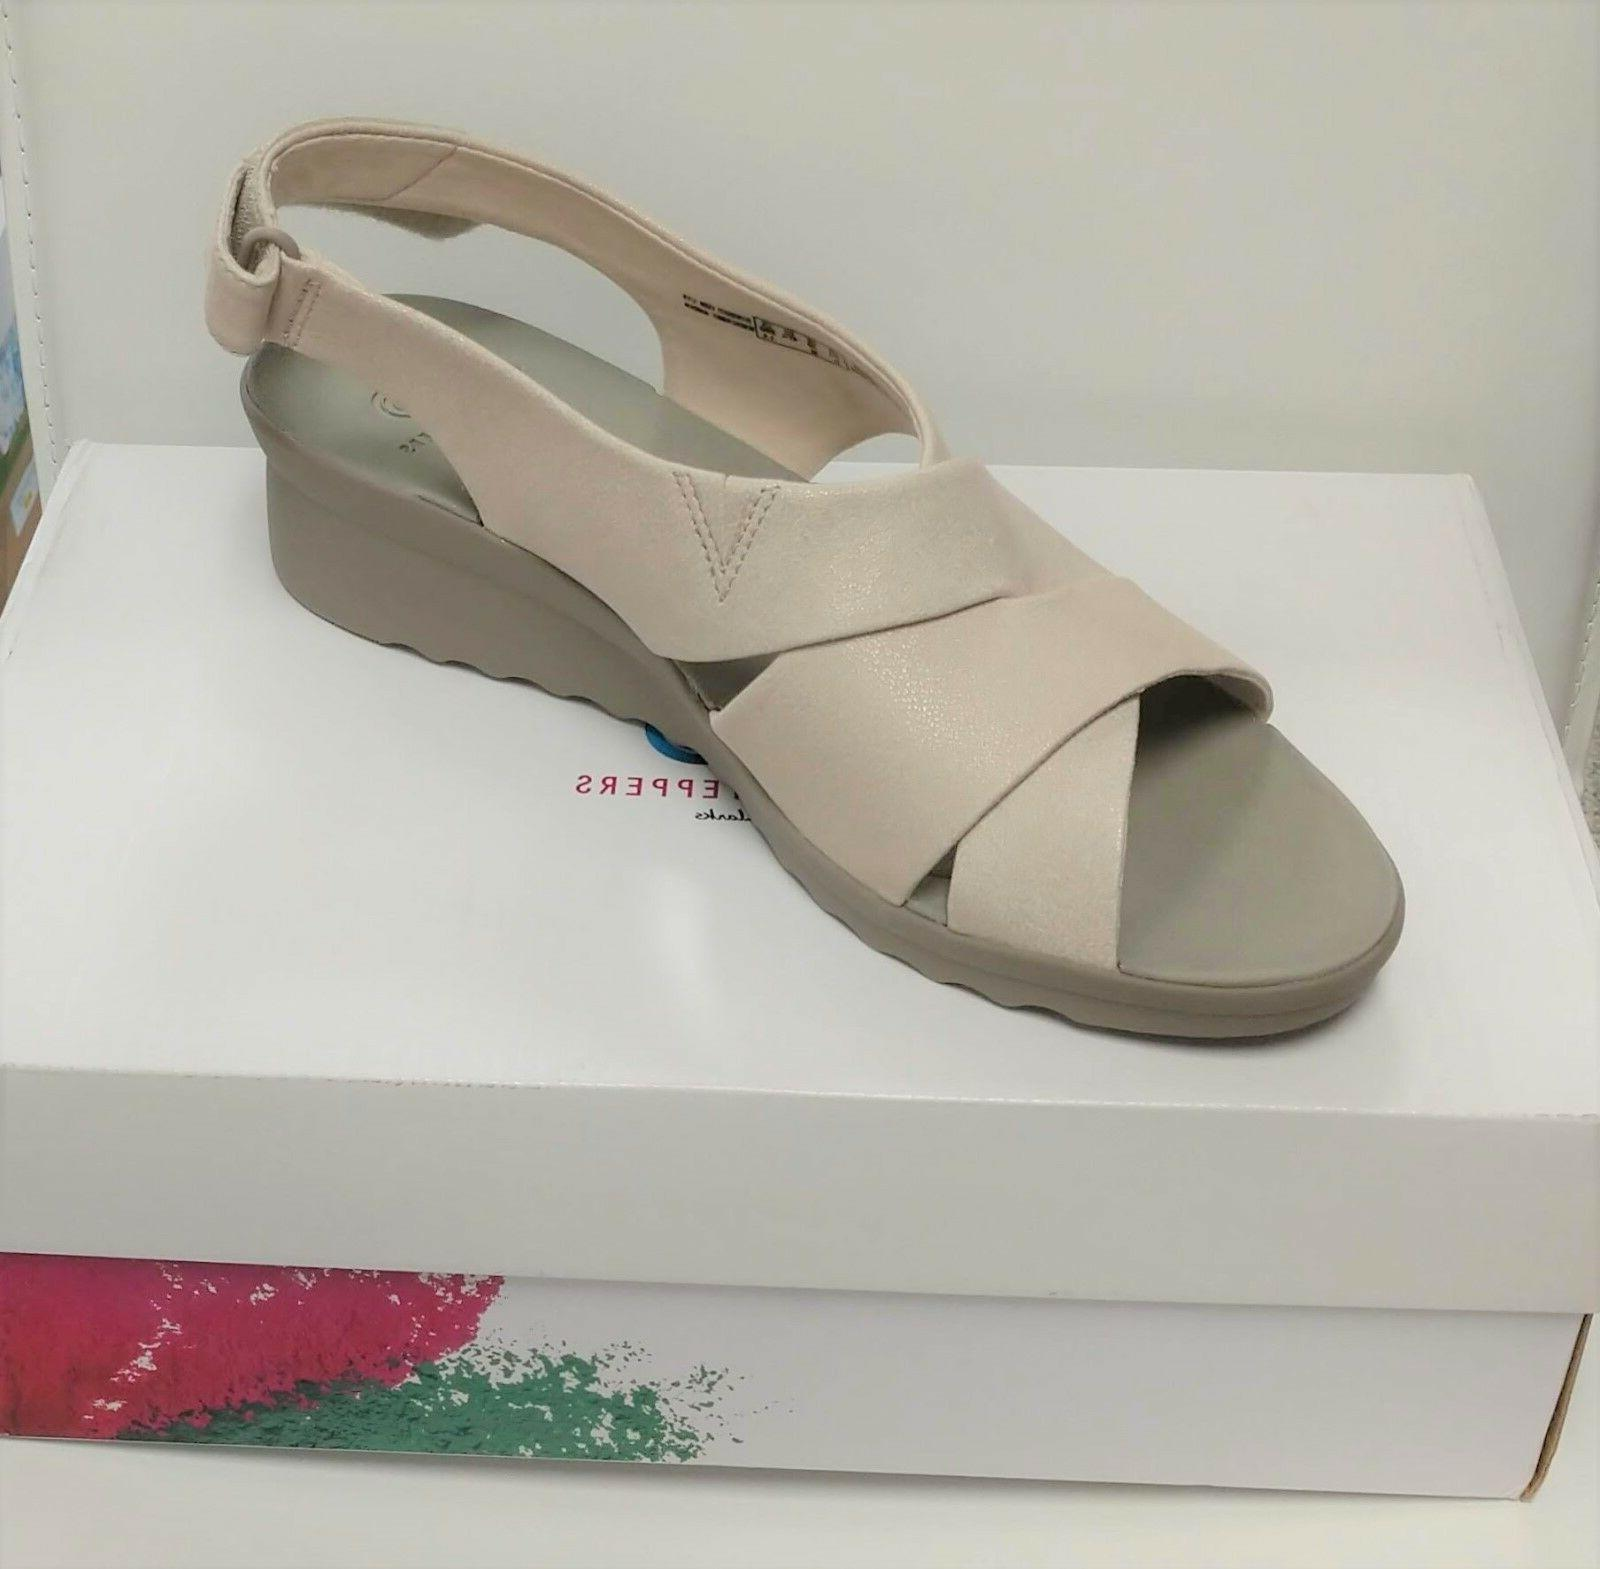 cloudsteppers by caddell bright wedge sandals size